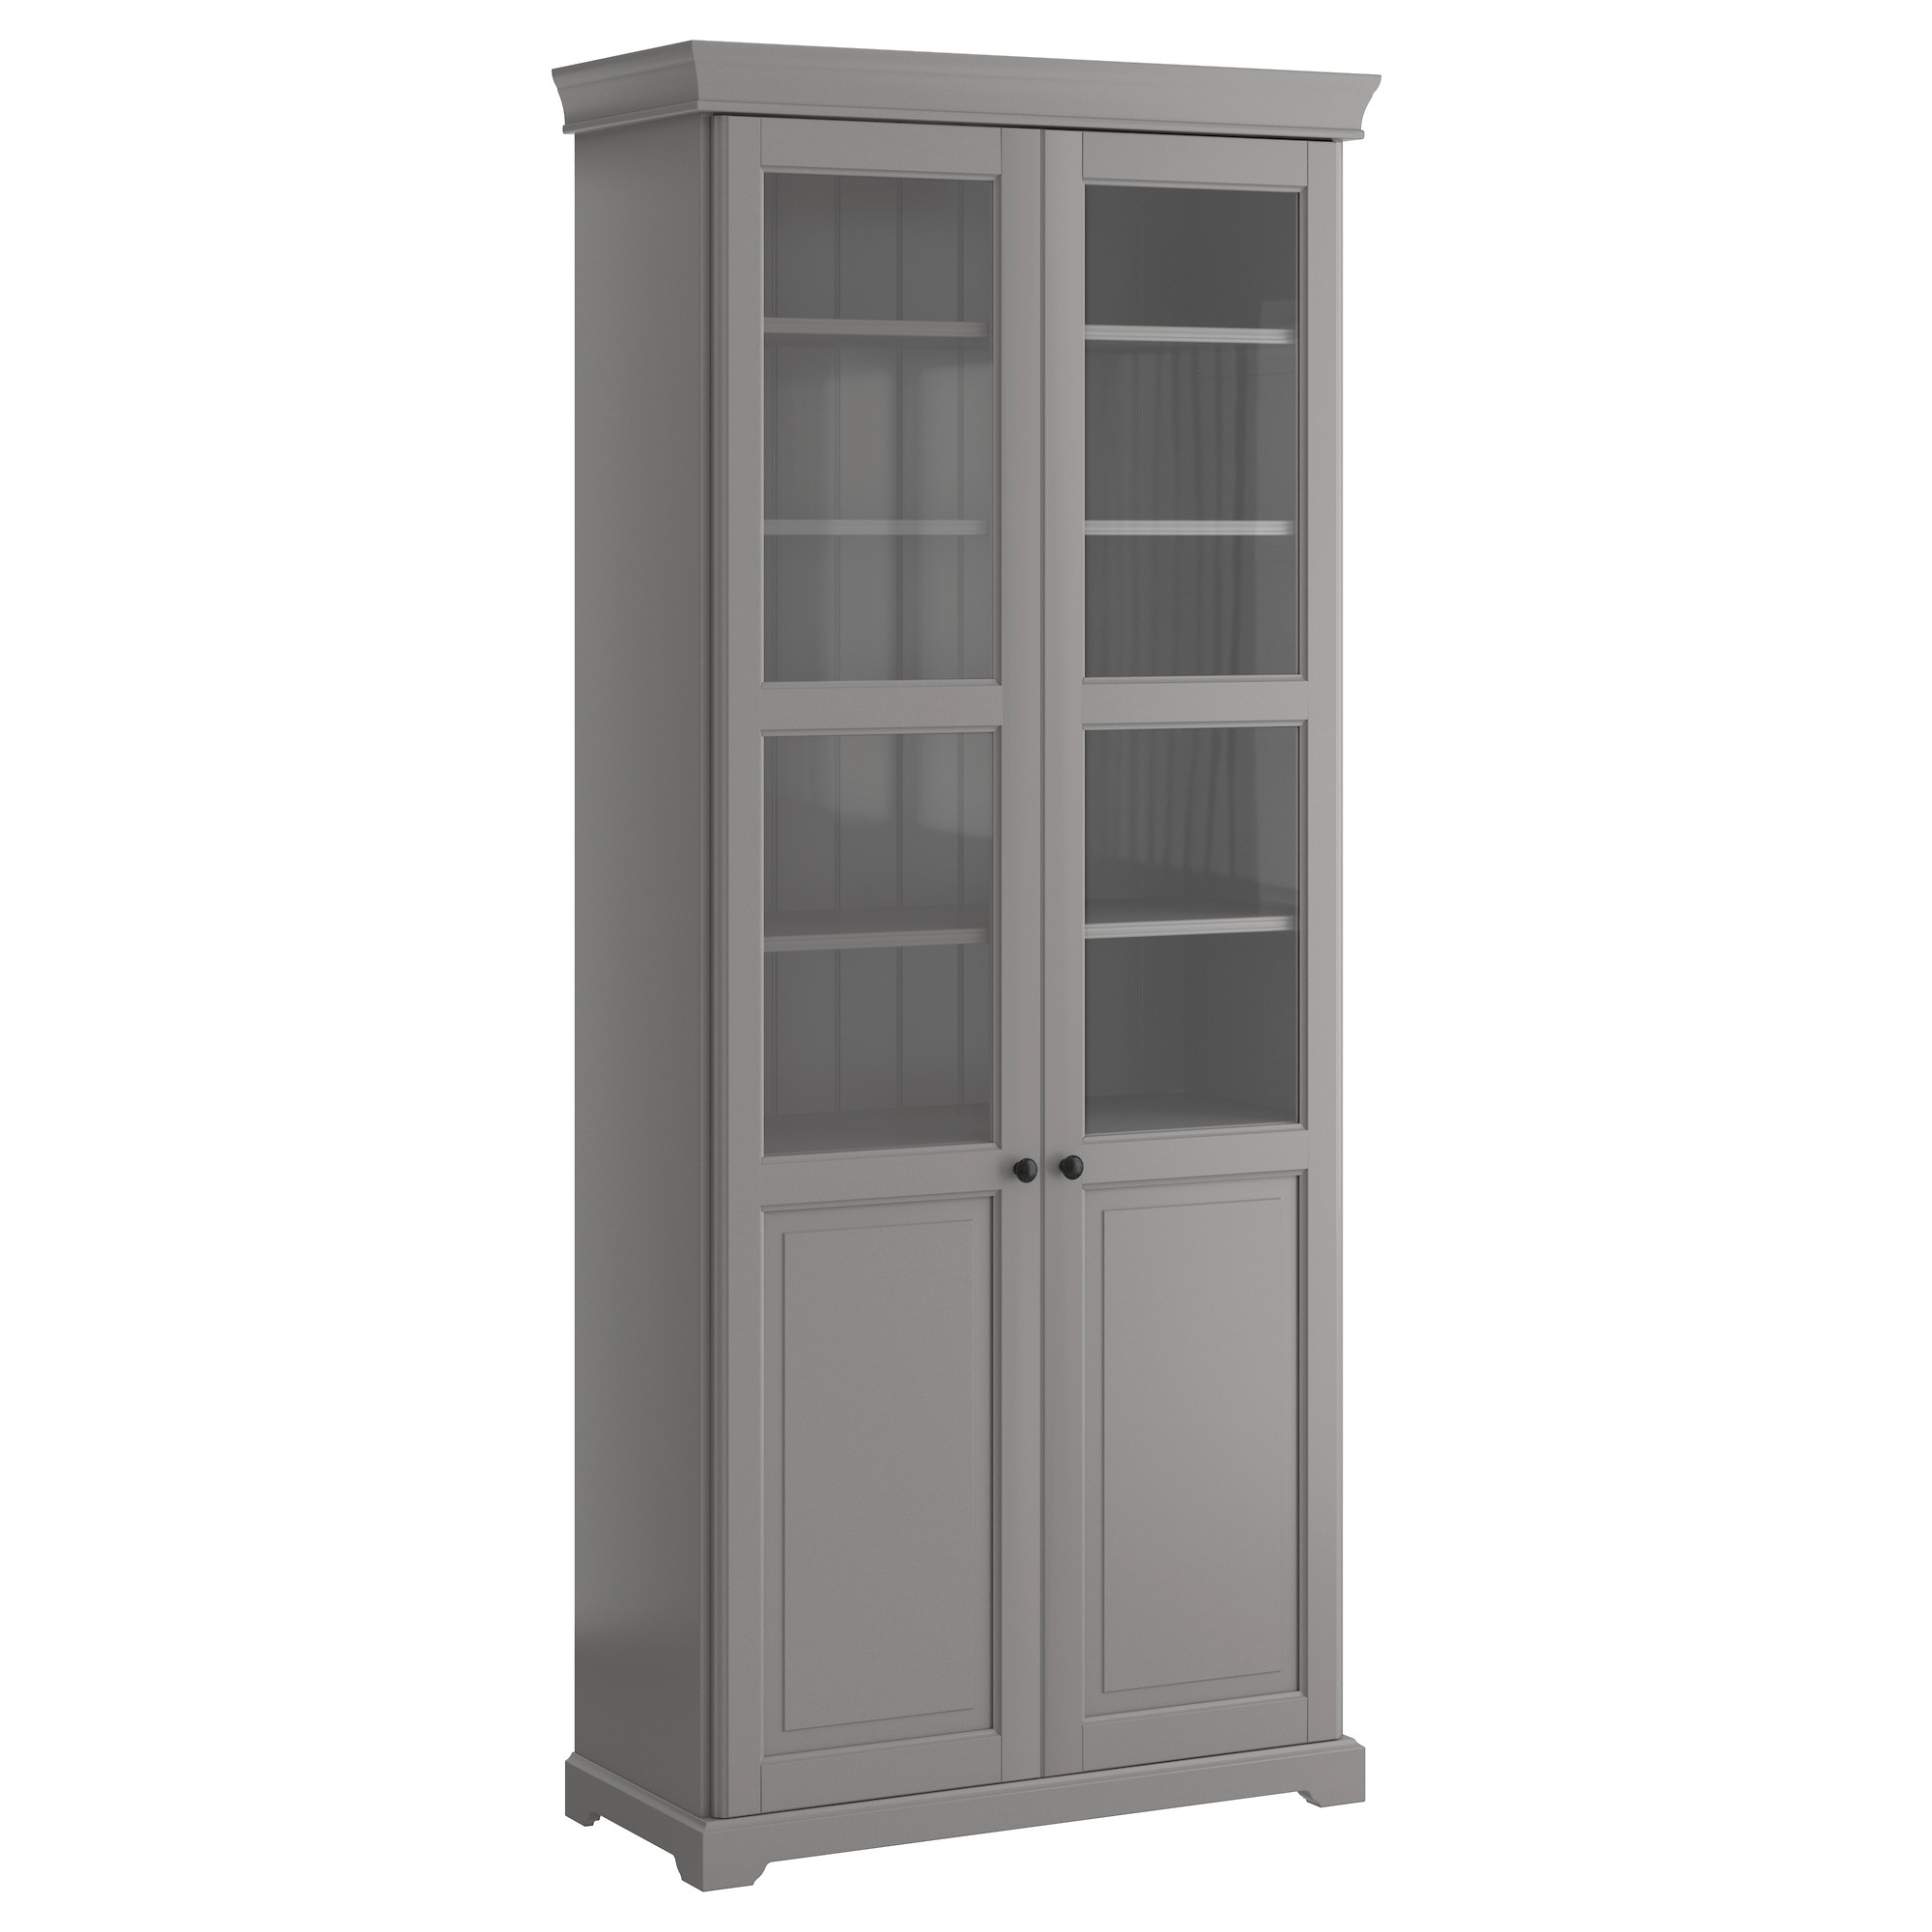 White Bookcases With Doors With Regard To Well Known Liatorp Bookcase With Glass Doors – Gray – Ikea (View 15 of 15)